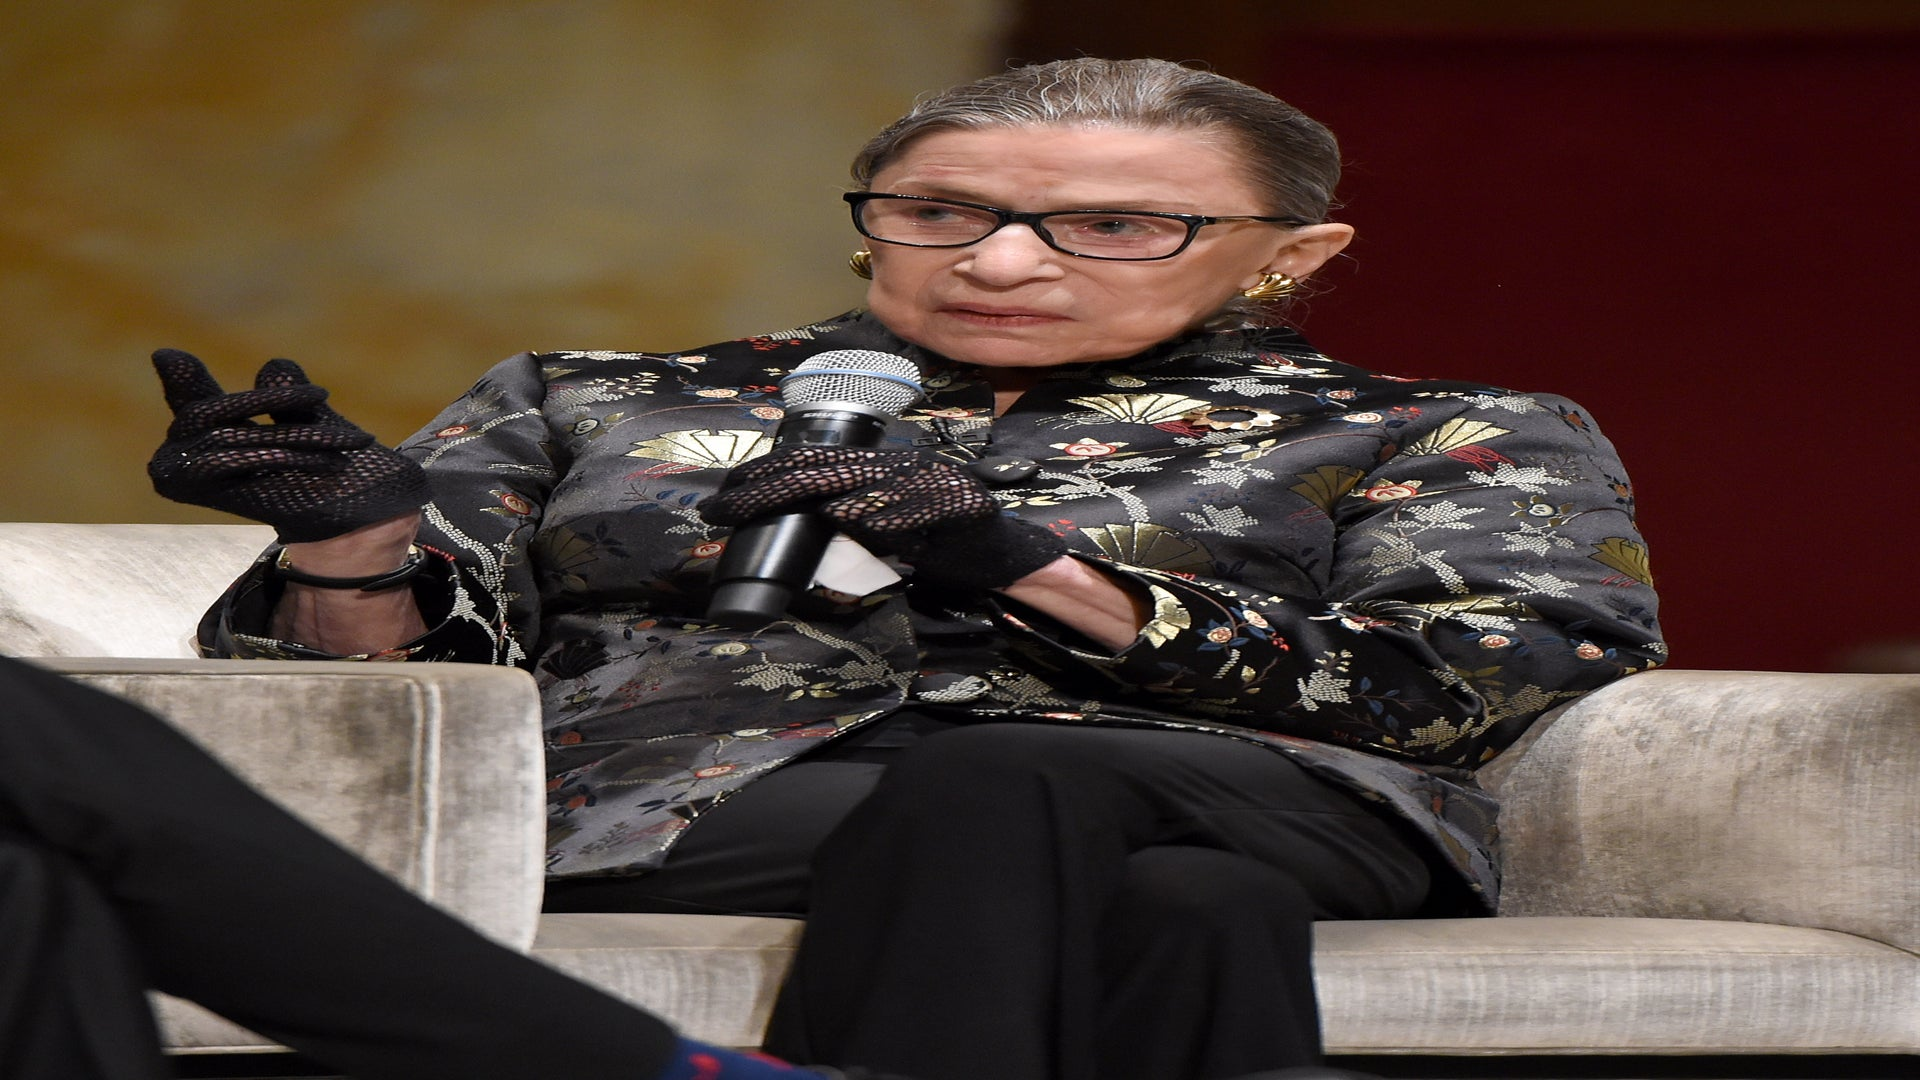 Supreme Court Justice Ruth Bader Ginsburg Calls Colin Kaepernick's National Anthem Protest 'Really Dumb'